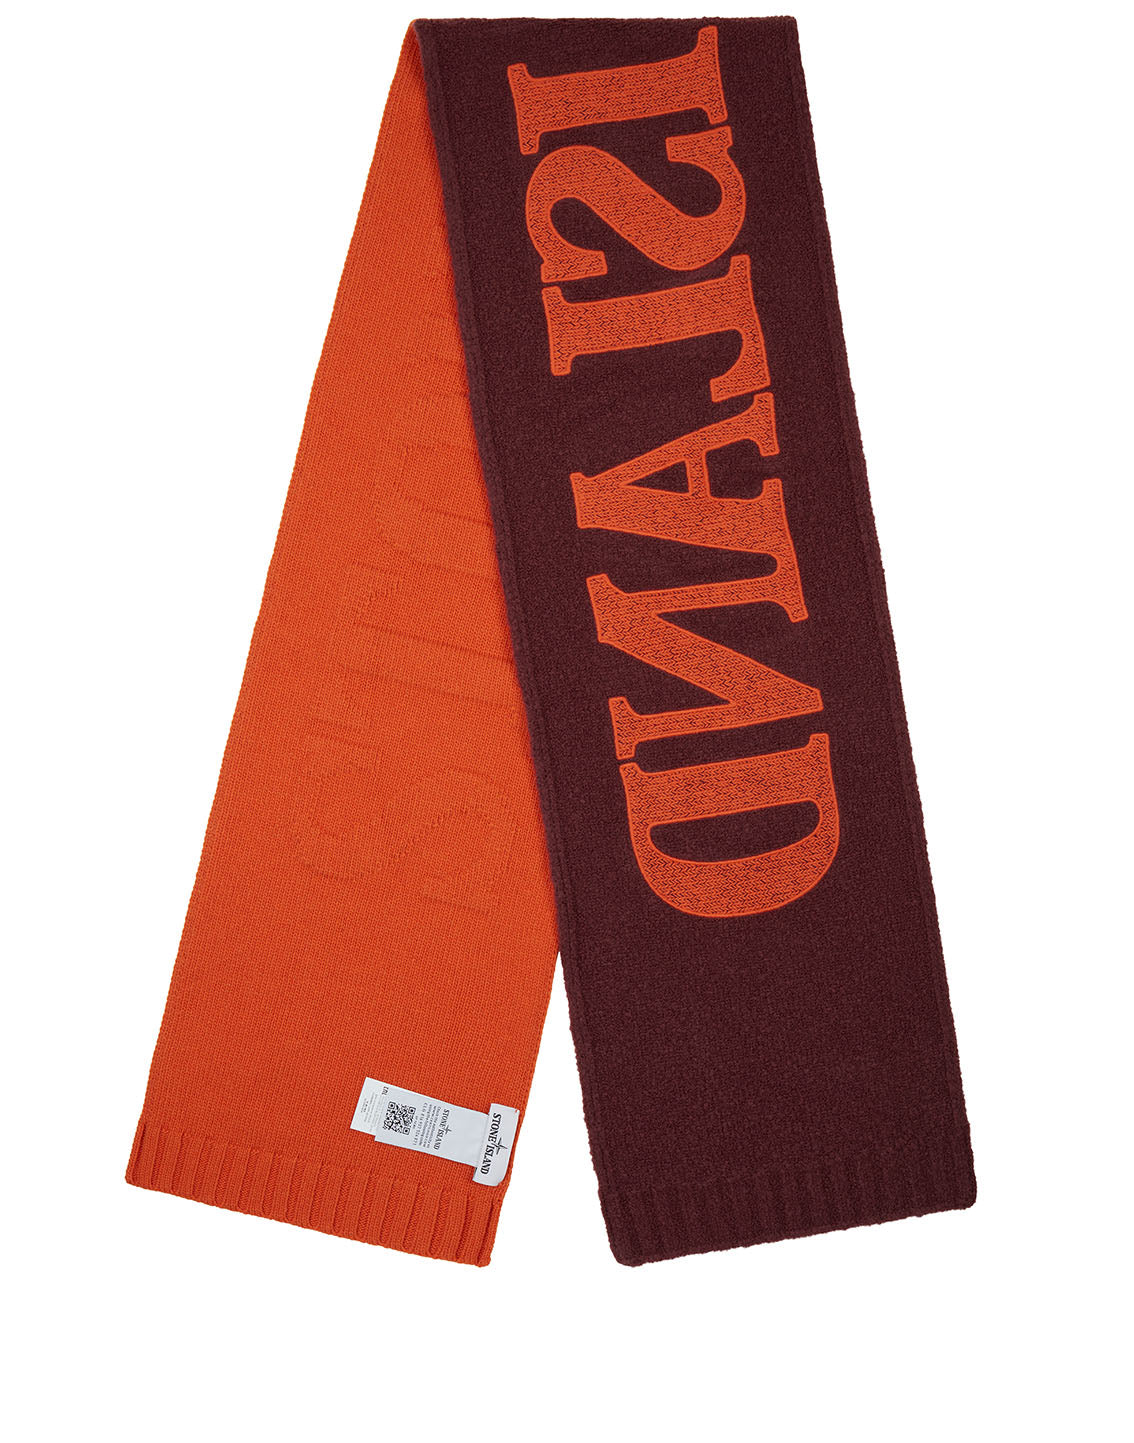 N09D3 Scarf in Orange